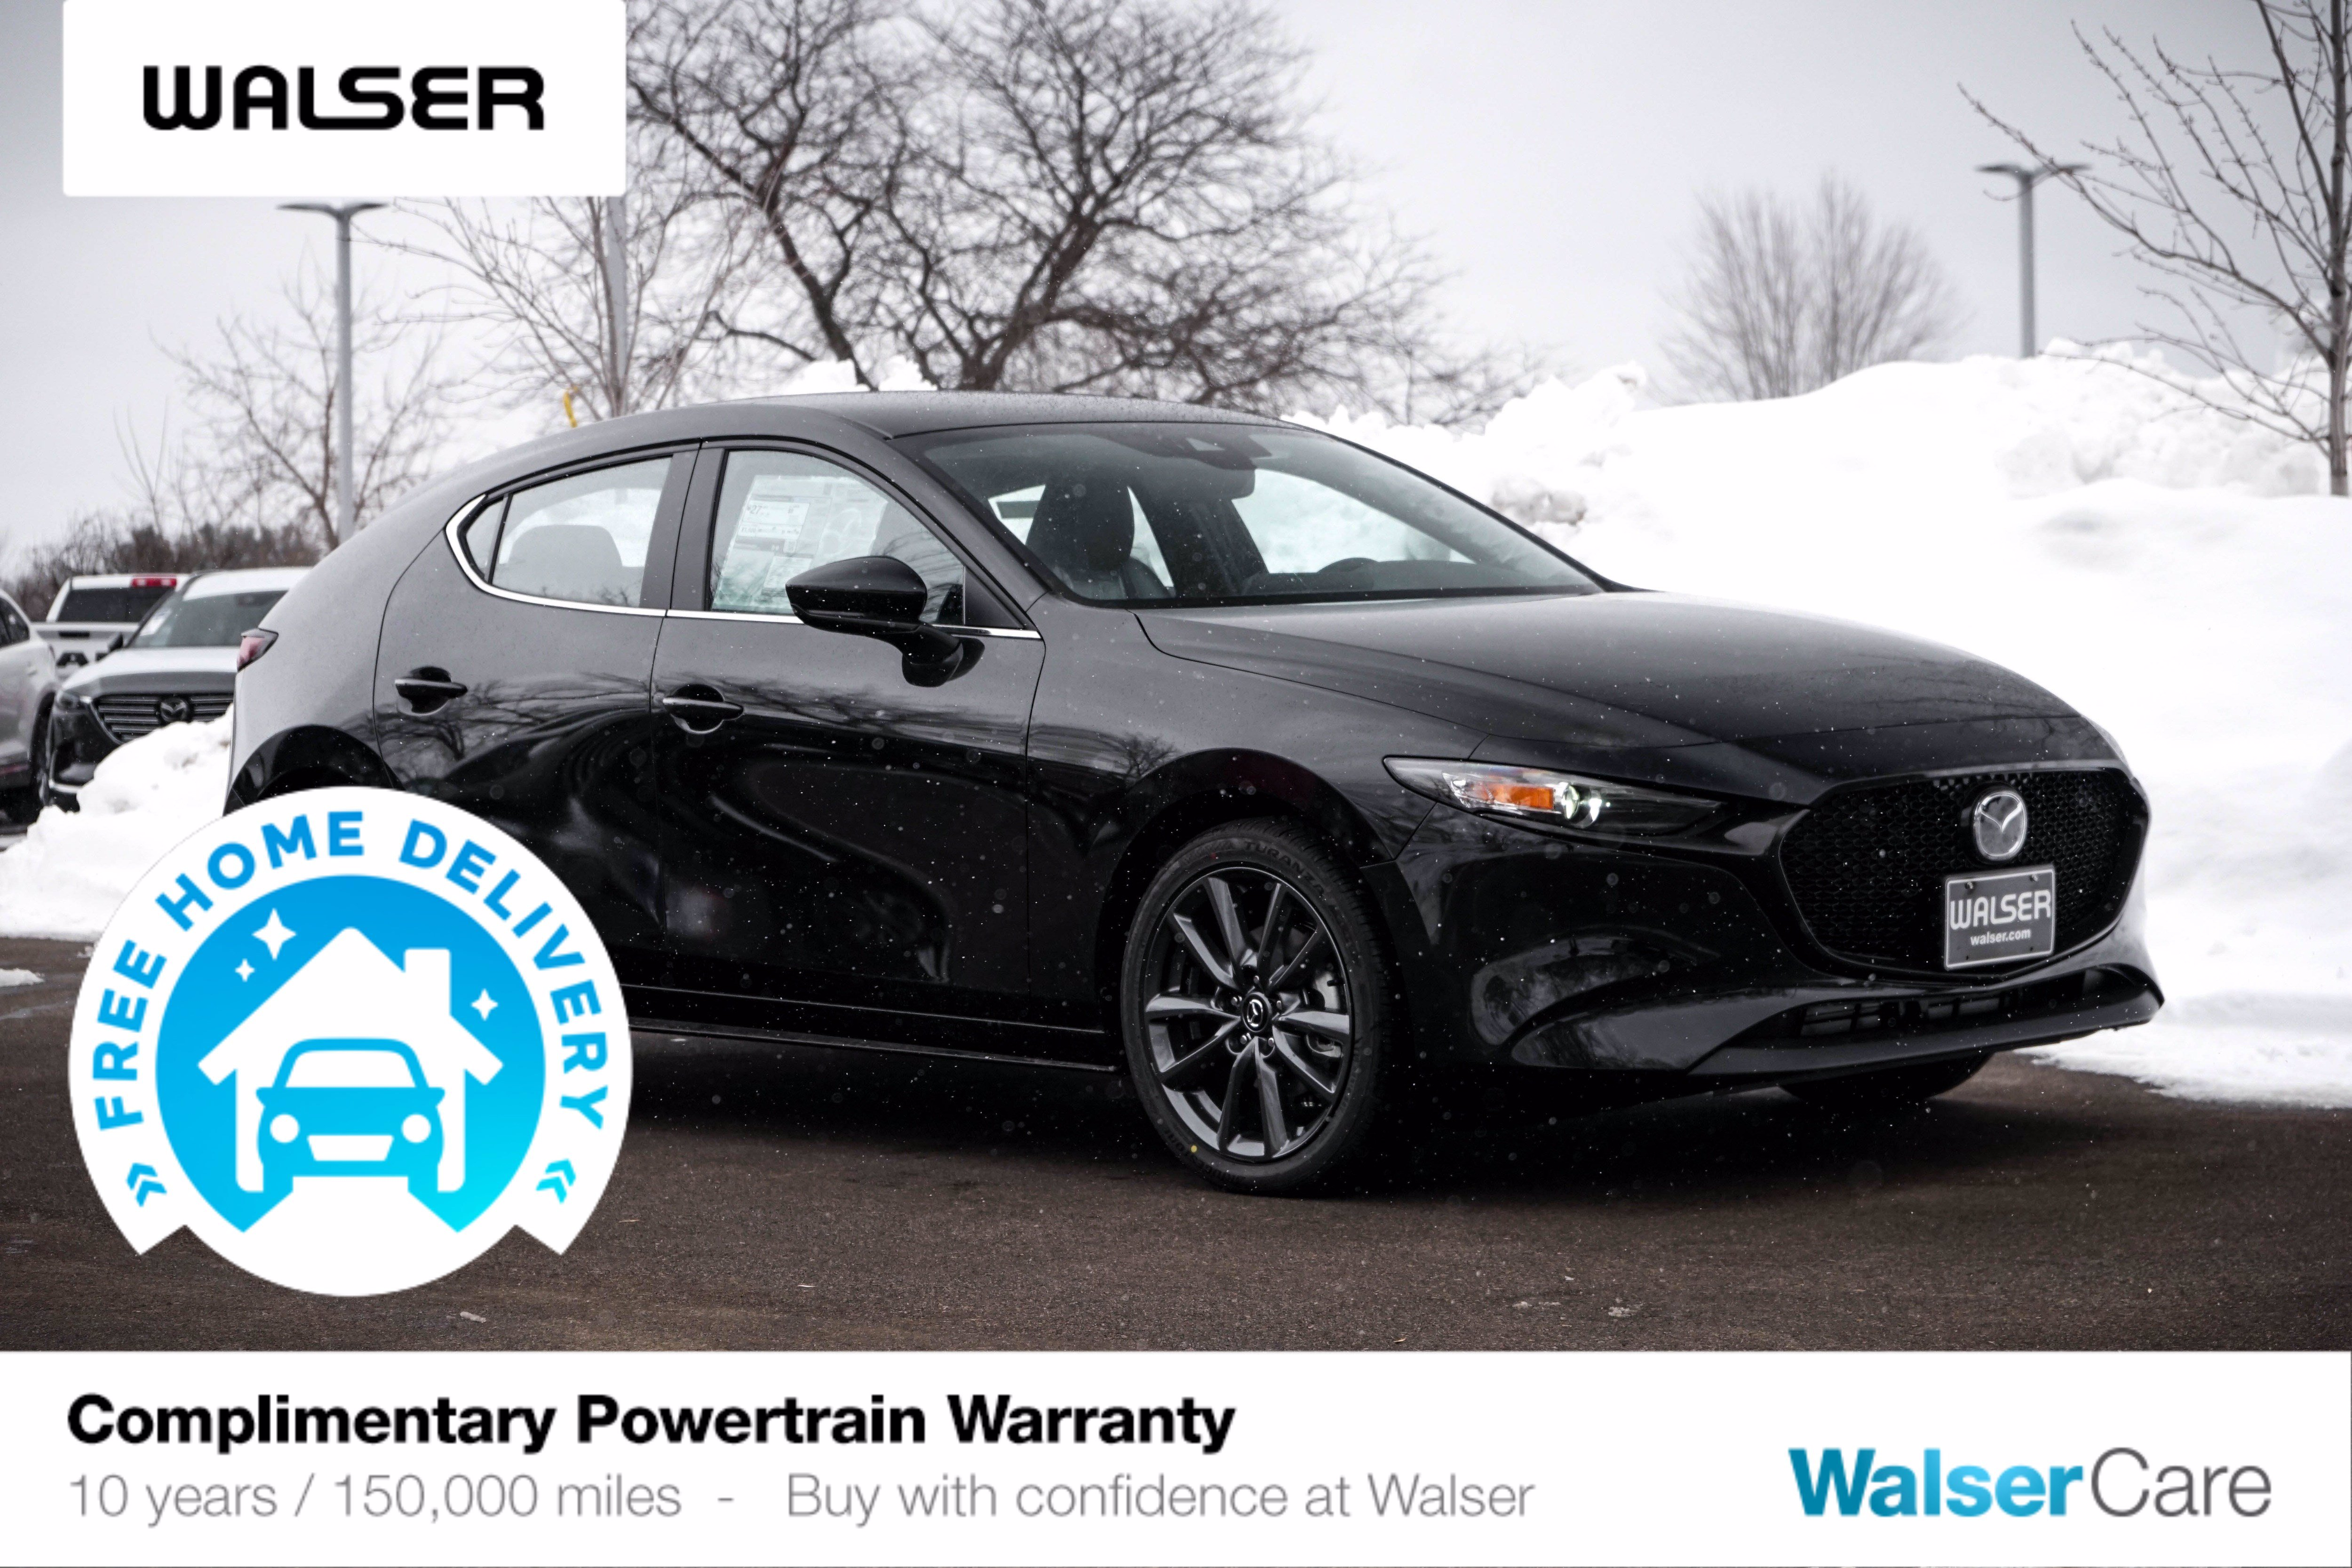 New 2020 Mazda3 Hatchback AWD Auto w/Preferred Pkg